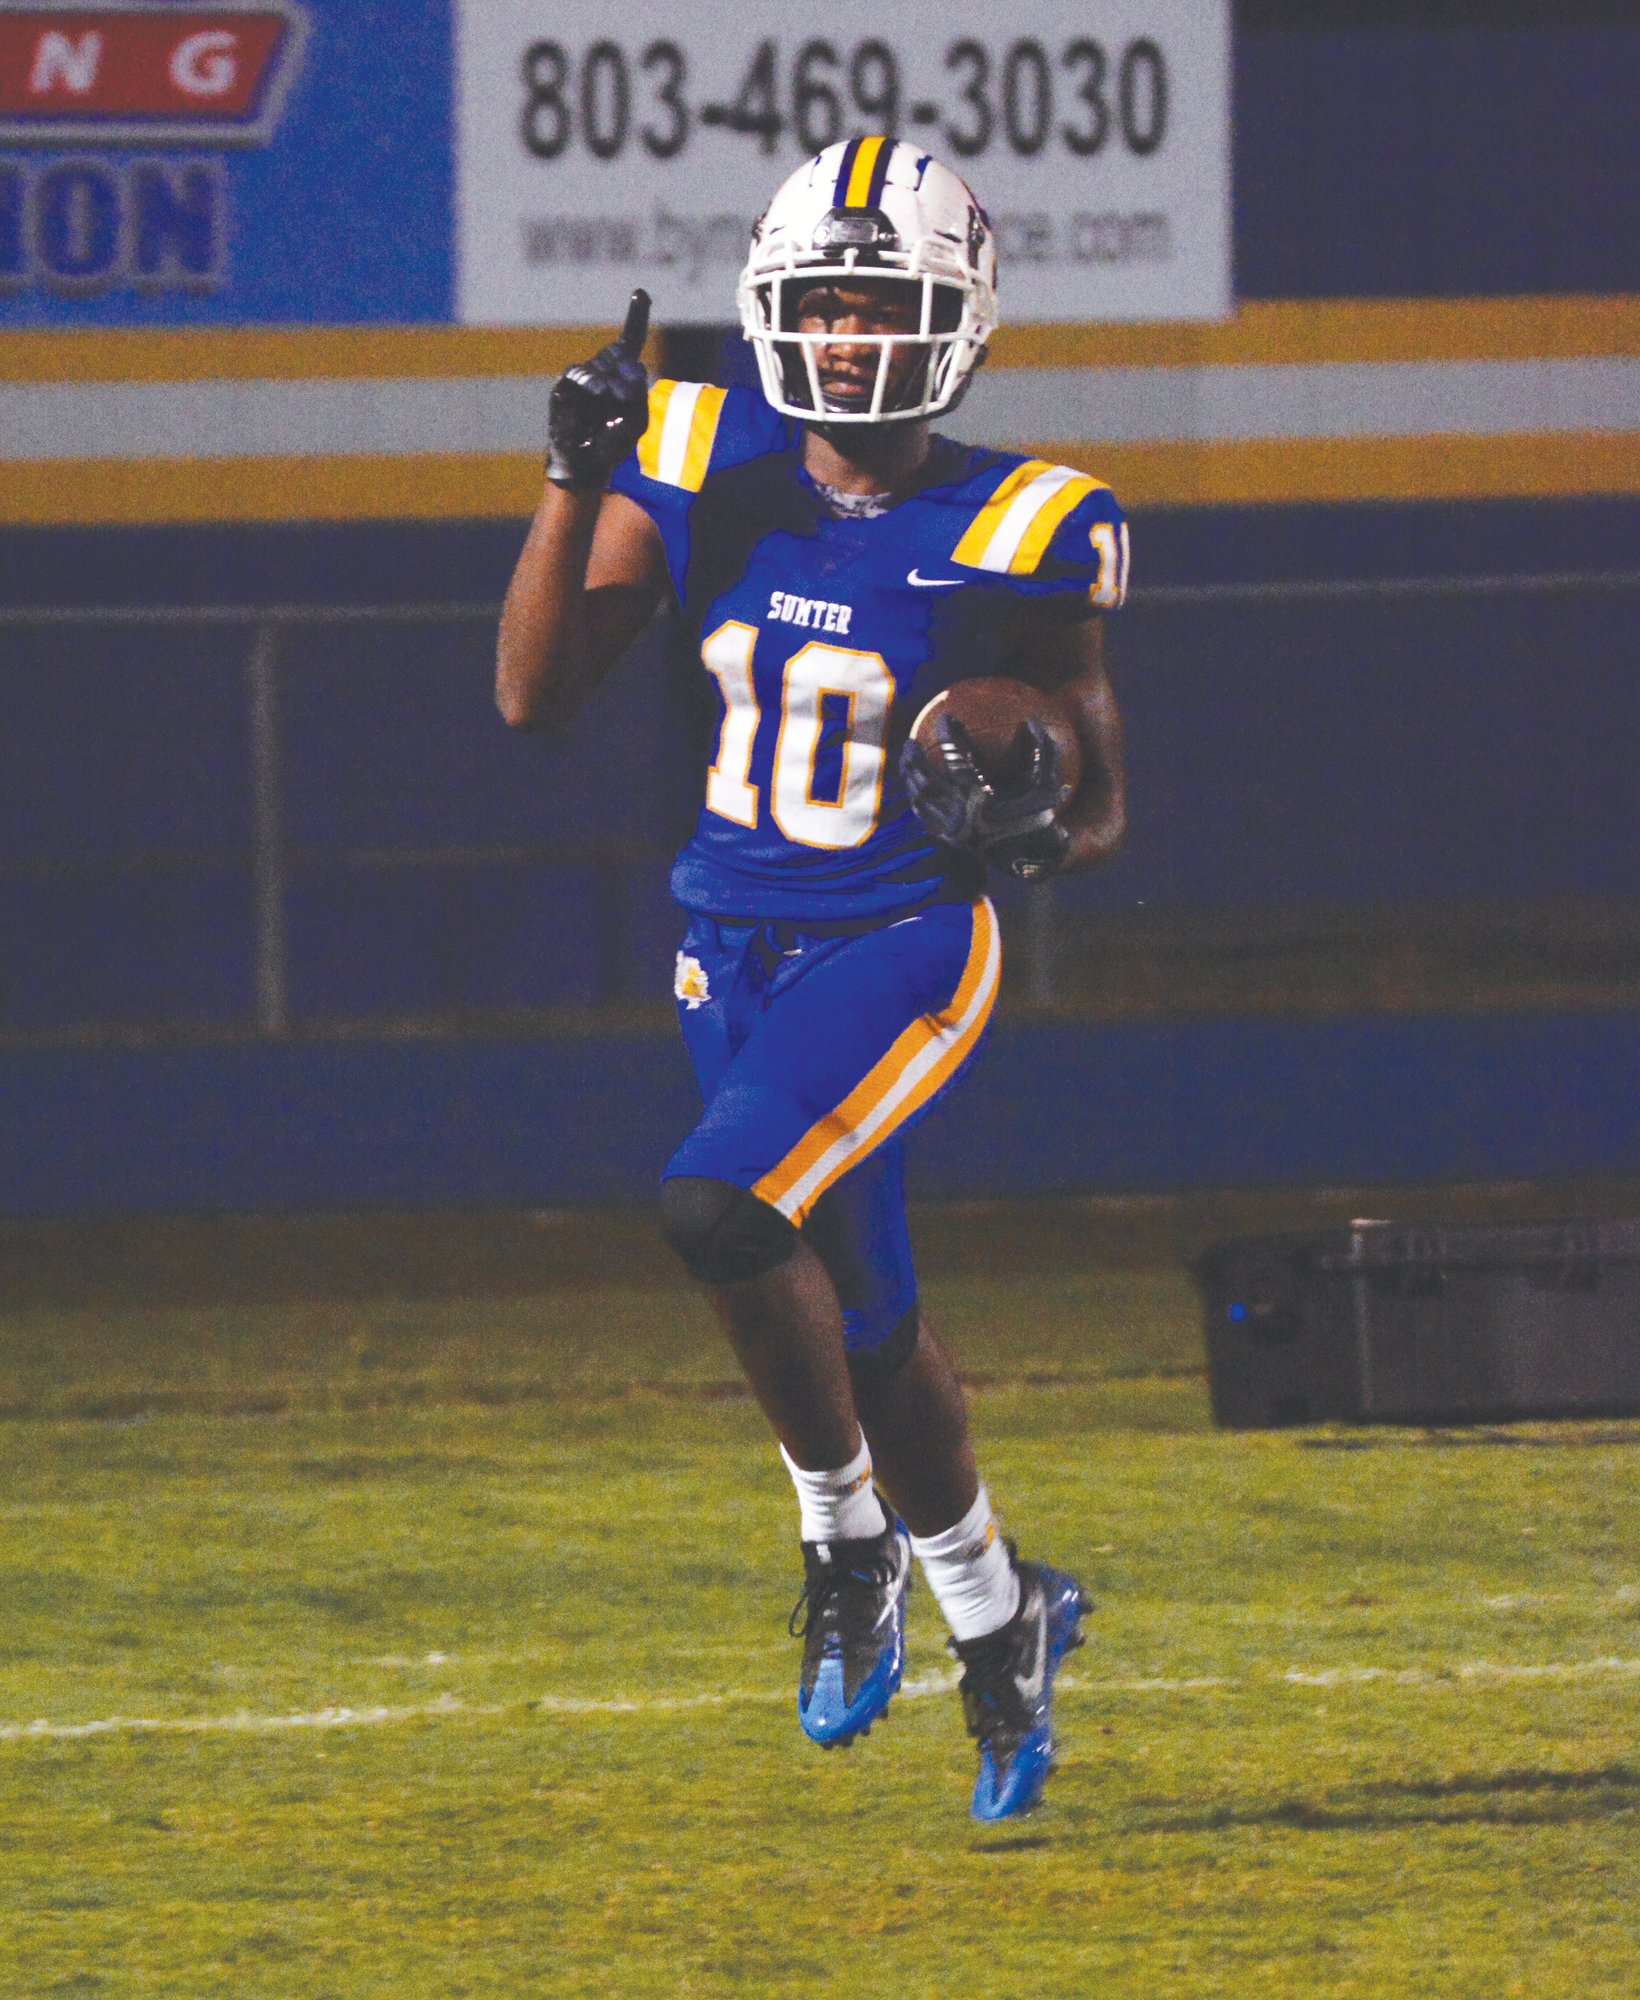 Anthony Dinkins-McCall celebrates after scoring a touchdown during Sumter's 61-0 win over Lakewood  last week. Dinkins-McCall is looking to have a third straight 100-yard rushing game when the Gamecocks play host to Northwestern on Friday.